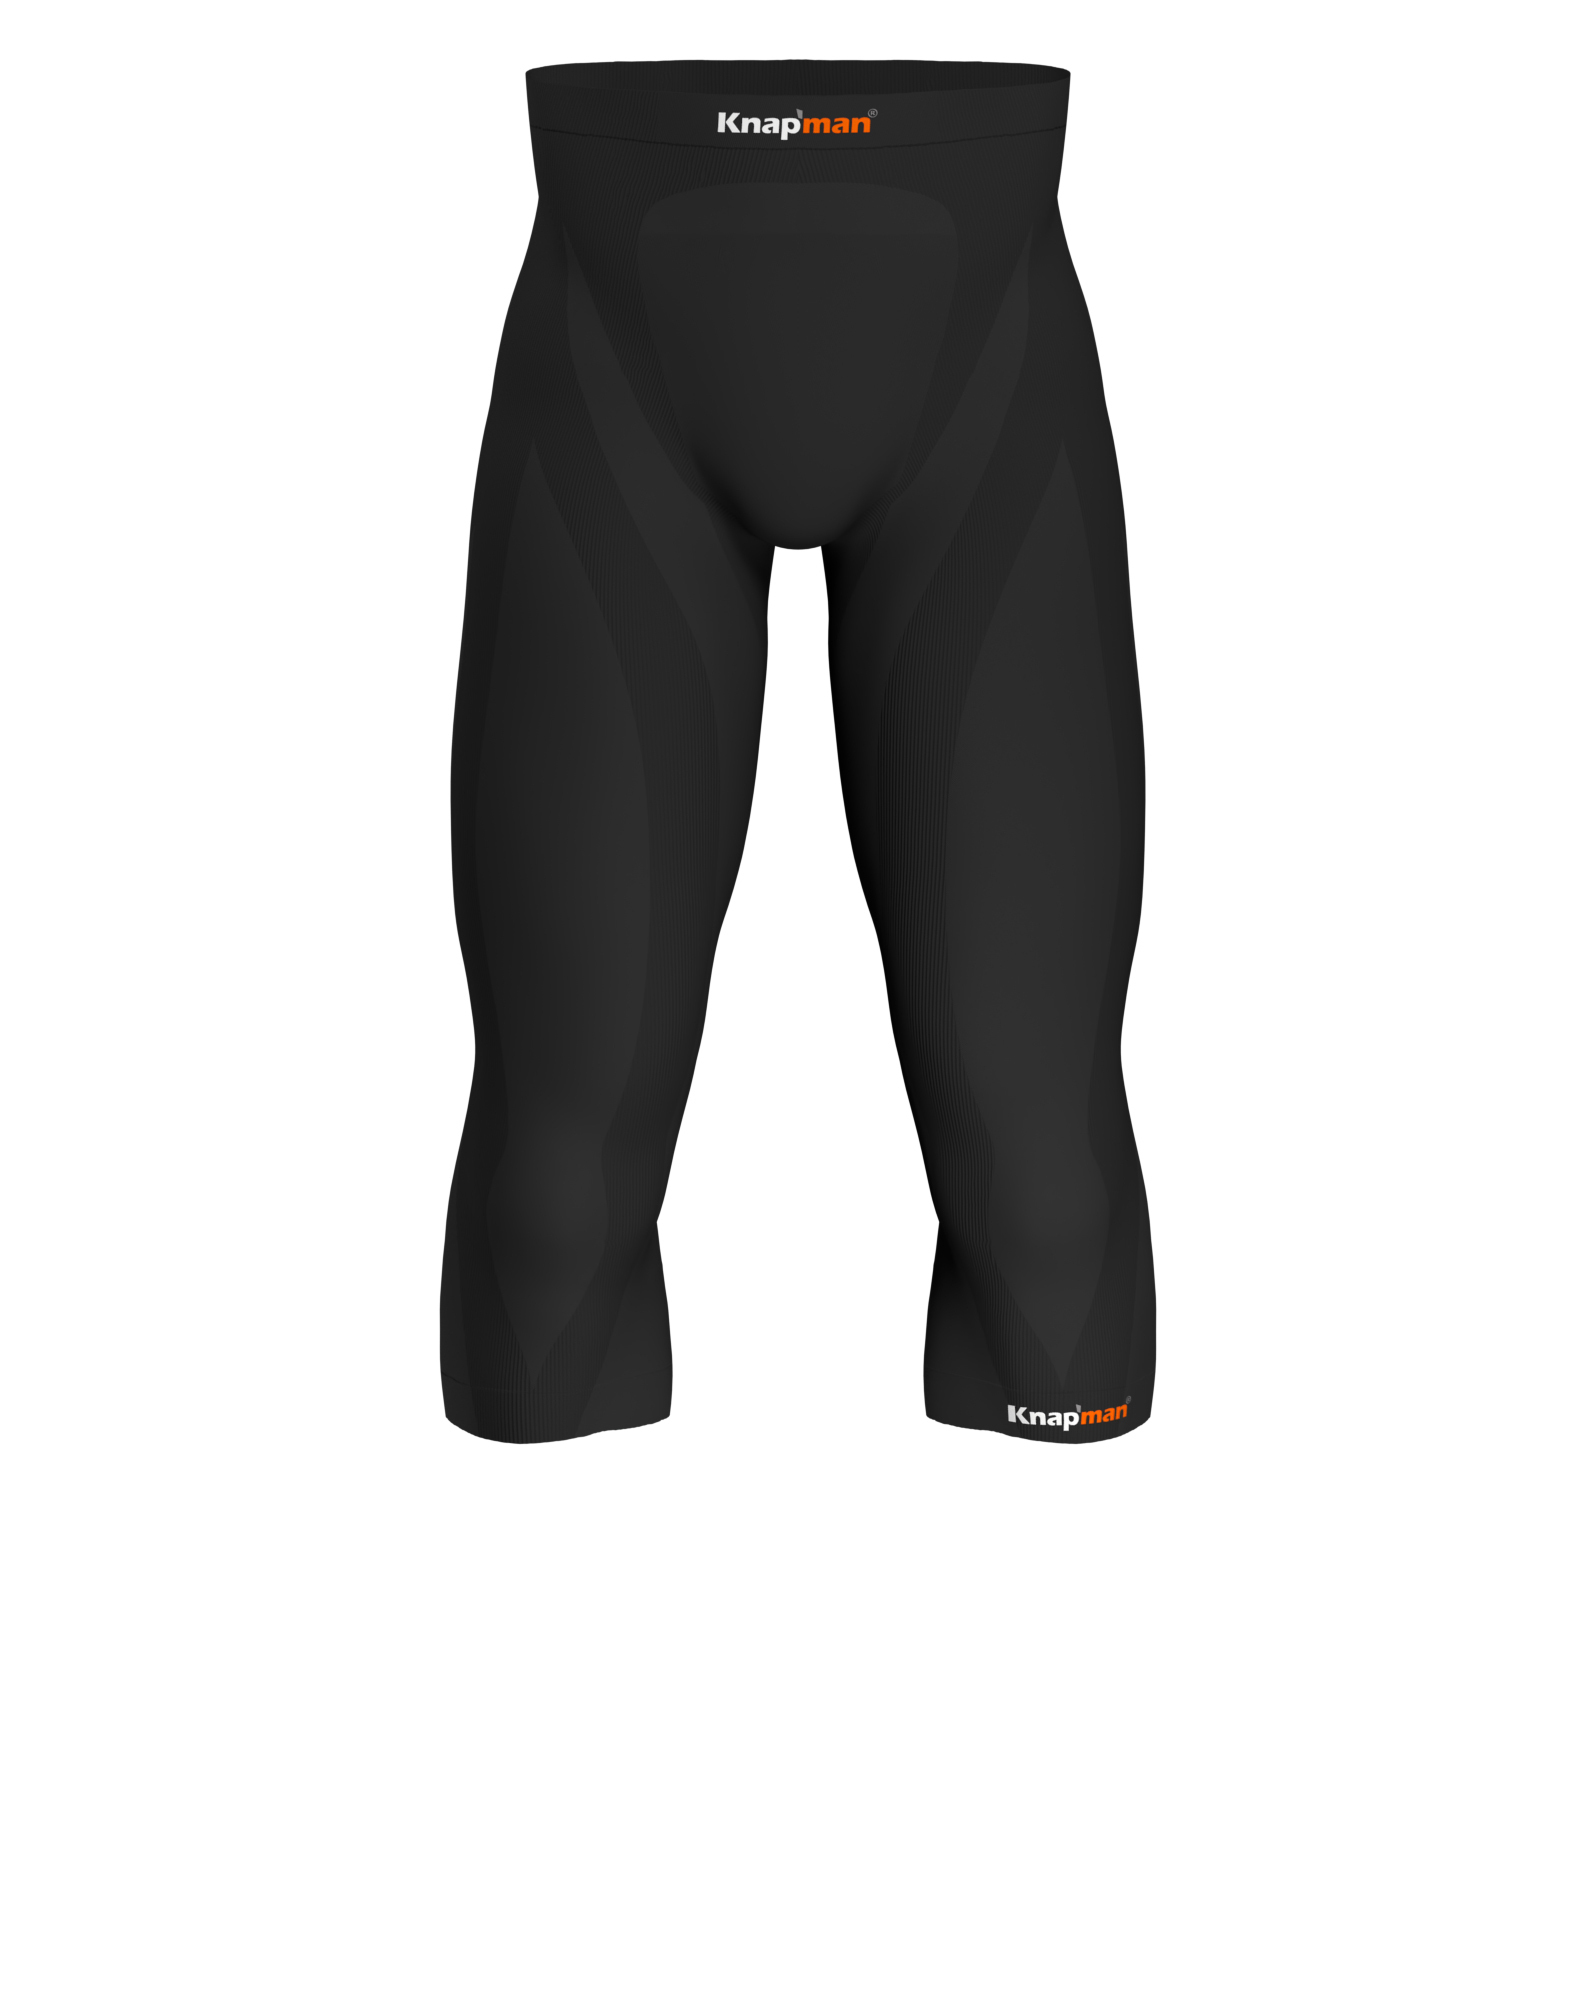 Knap'man Zoned Compression Tights 3/4 - 25%